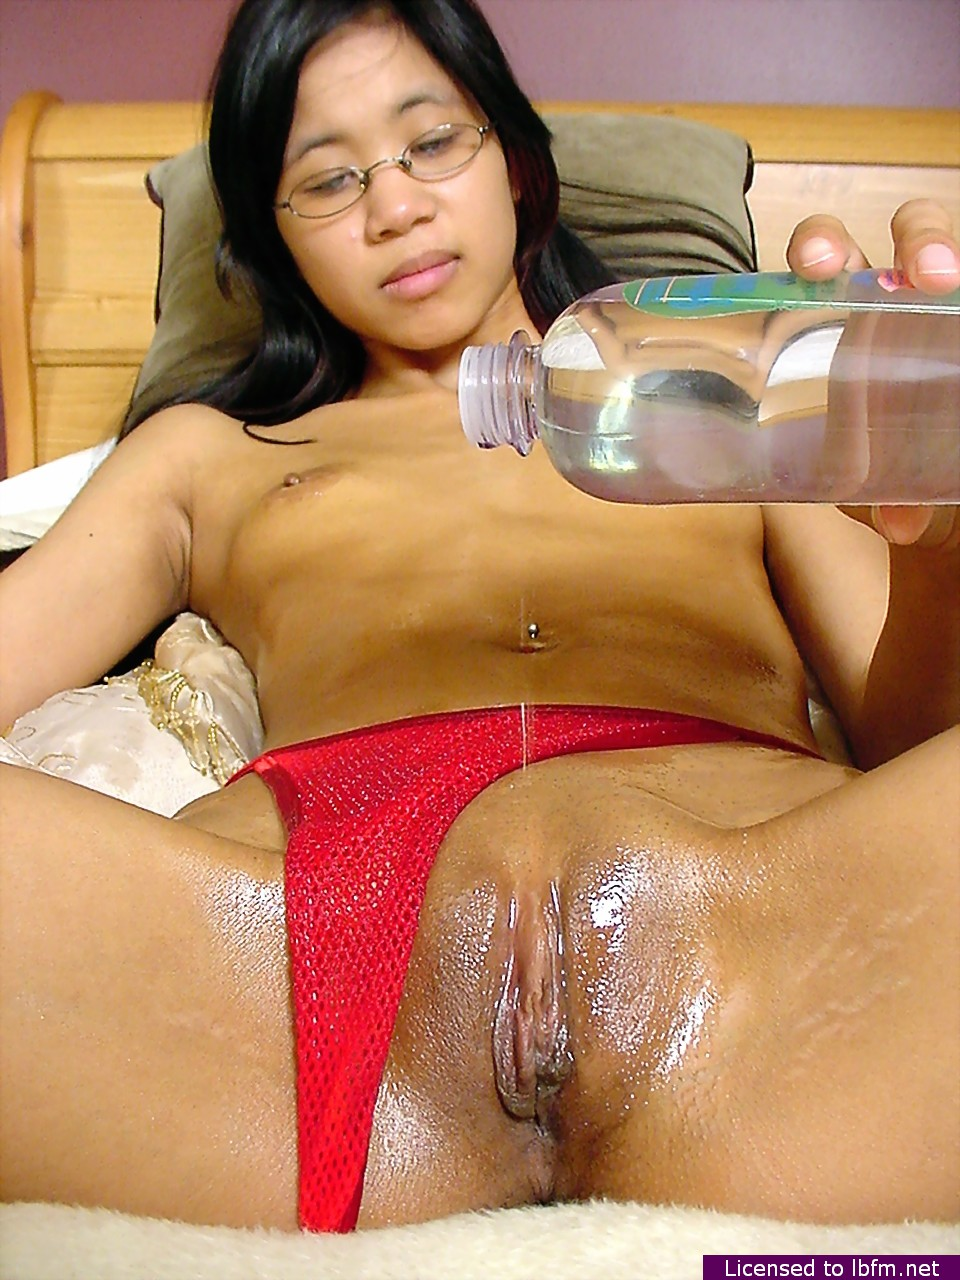 Oiled Asians Tube Search 9248 videos